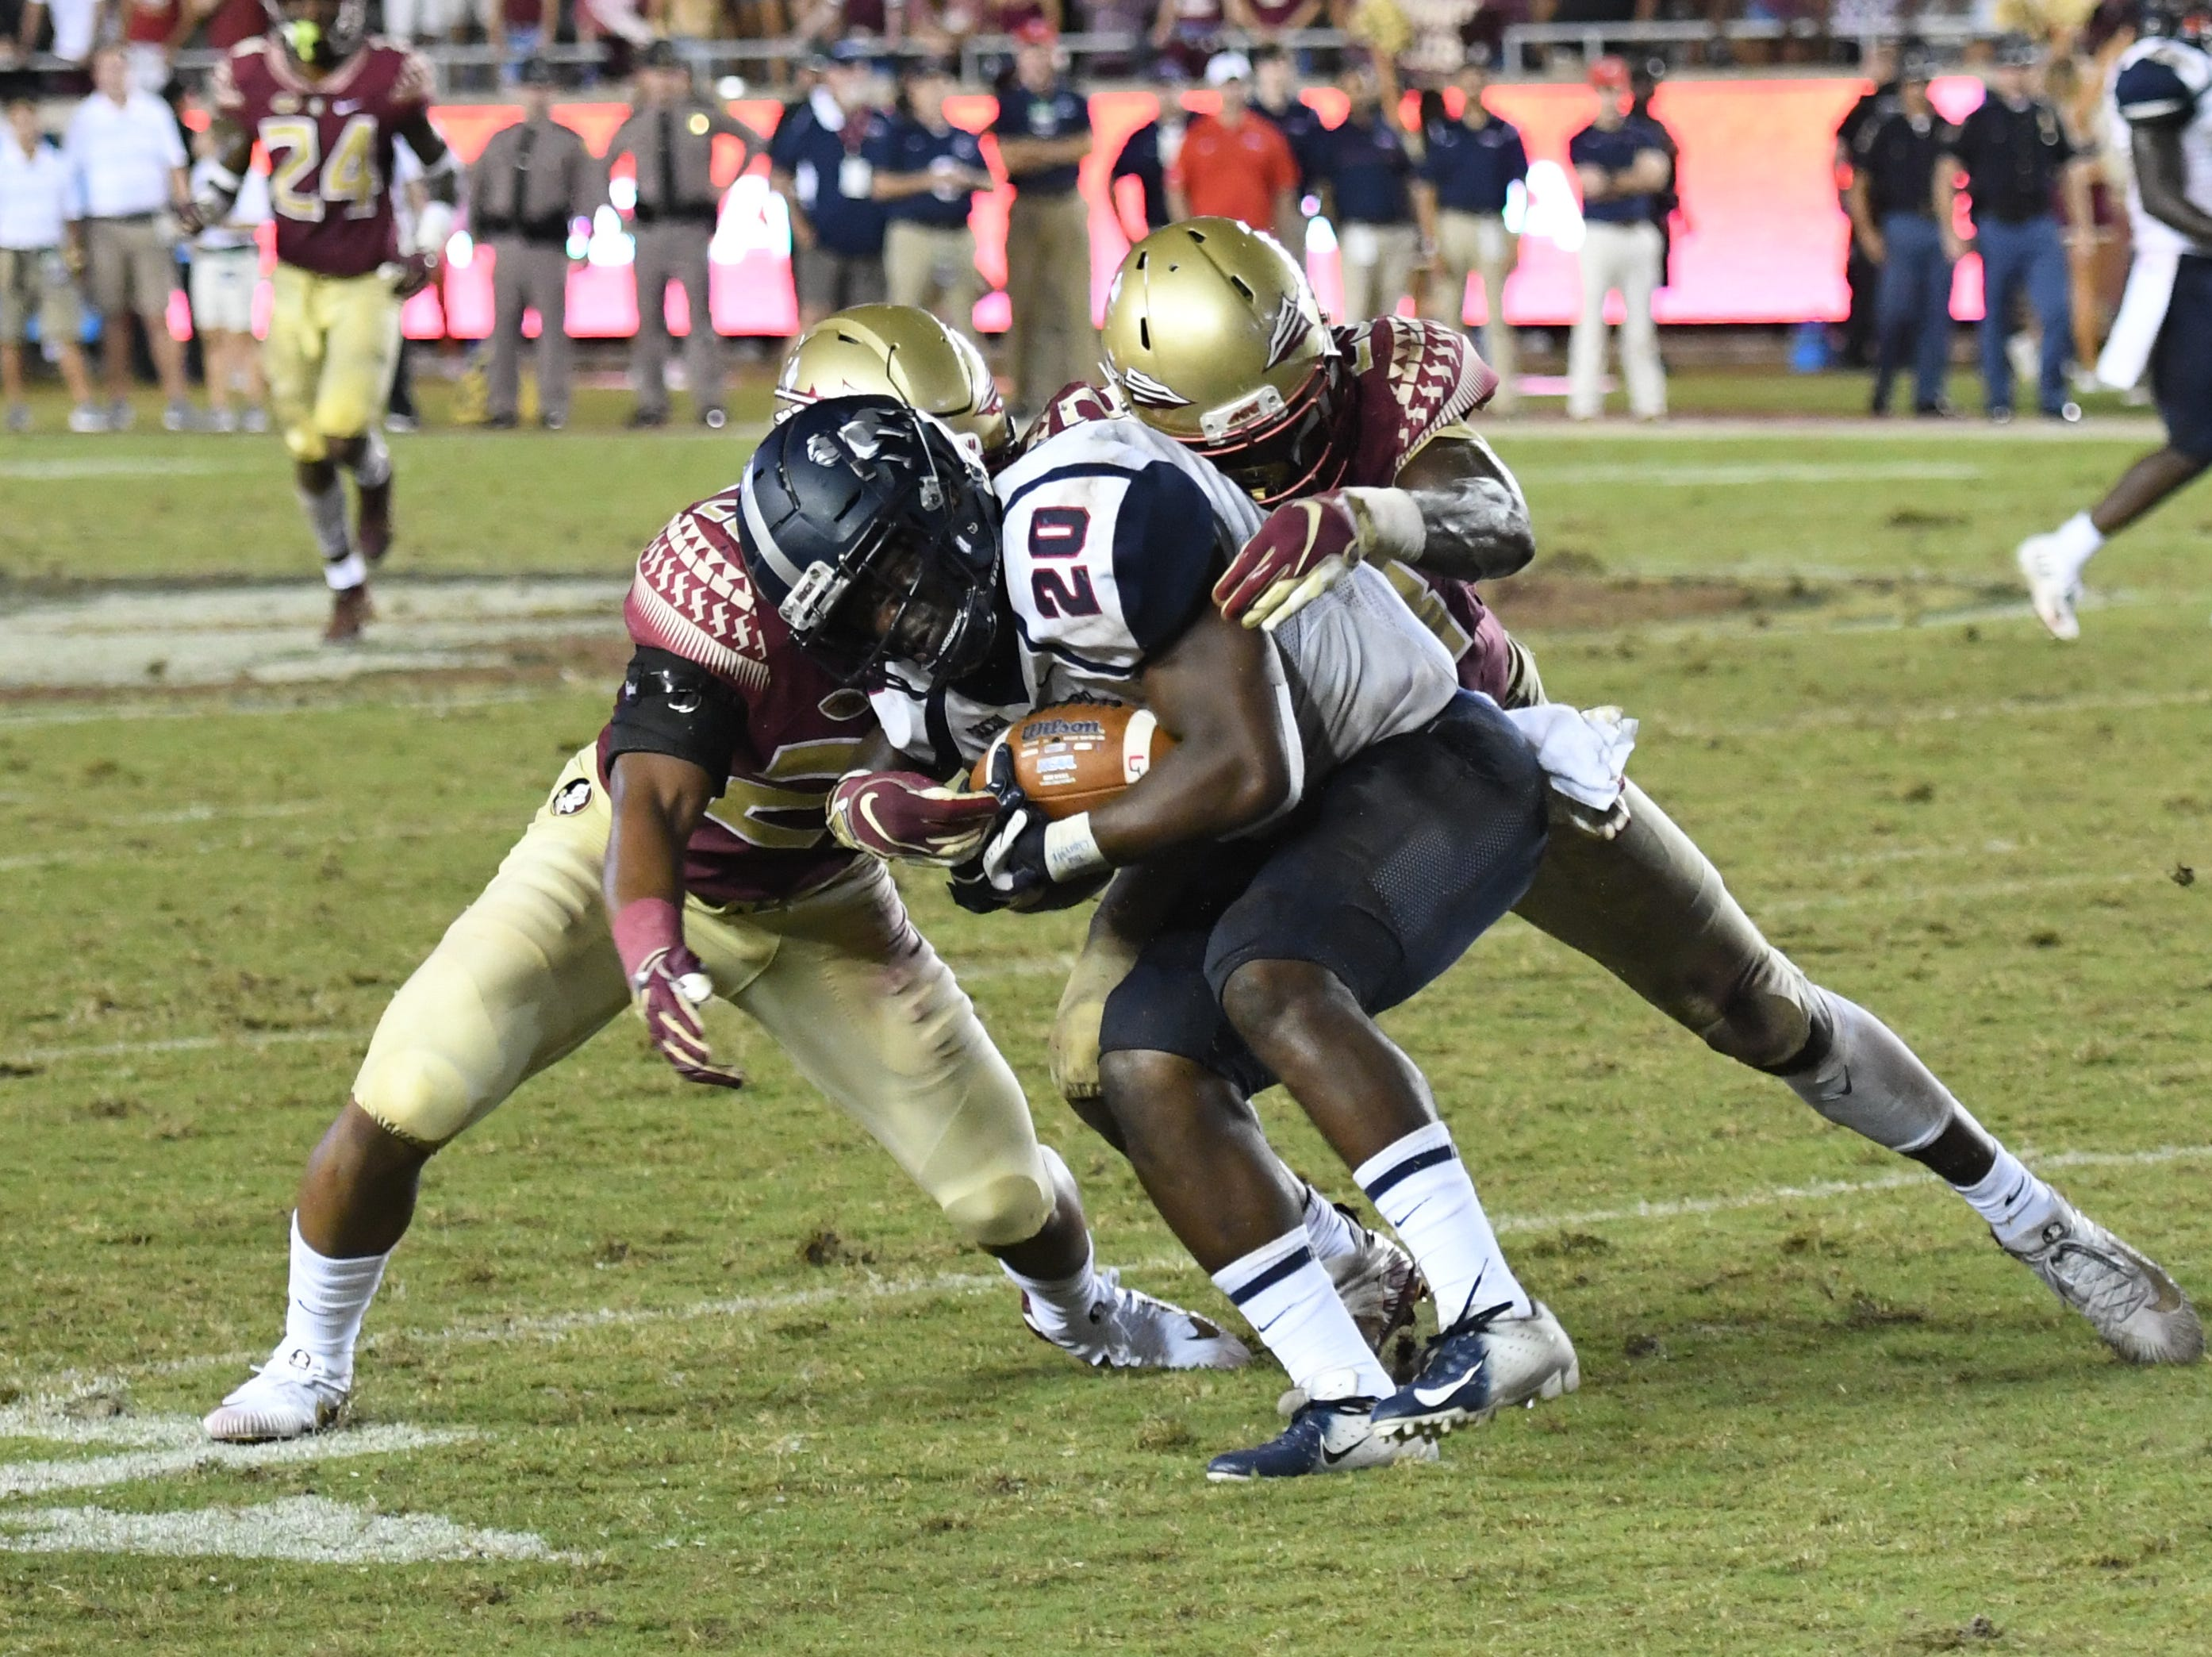 A couple of FSU defenders tackling a Samford running back during the fourth quarter of FSU's game against Samford on Saturday night at Doak Campbell Stadium.